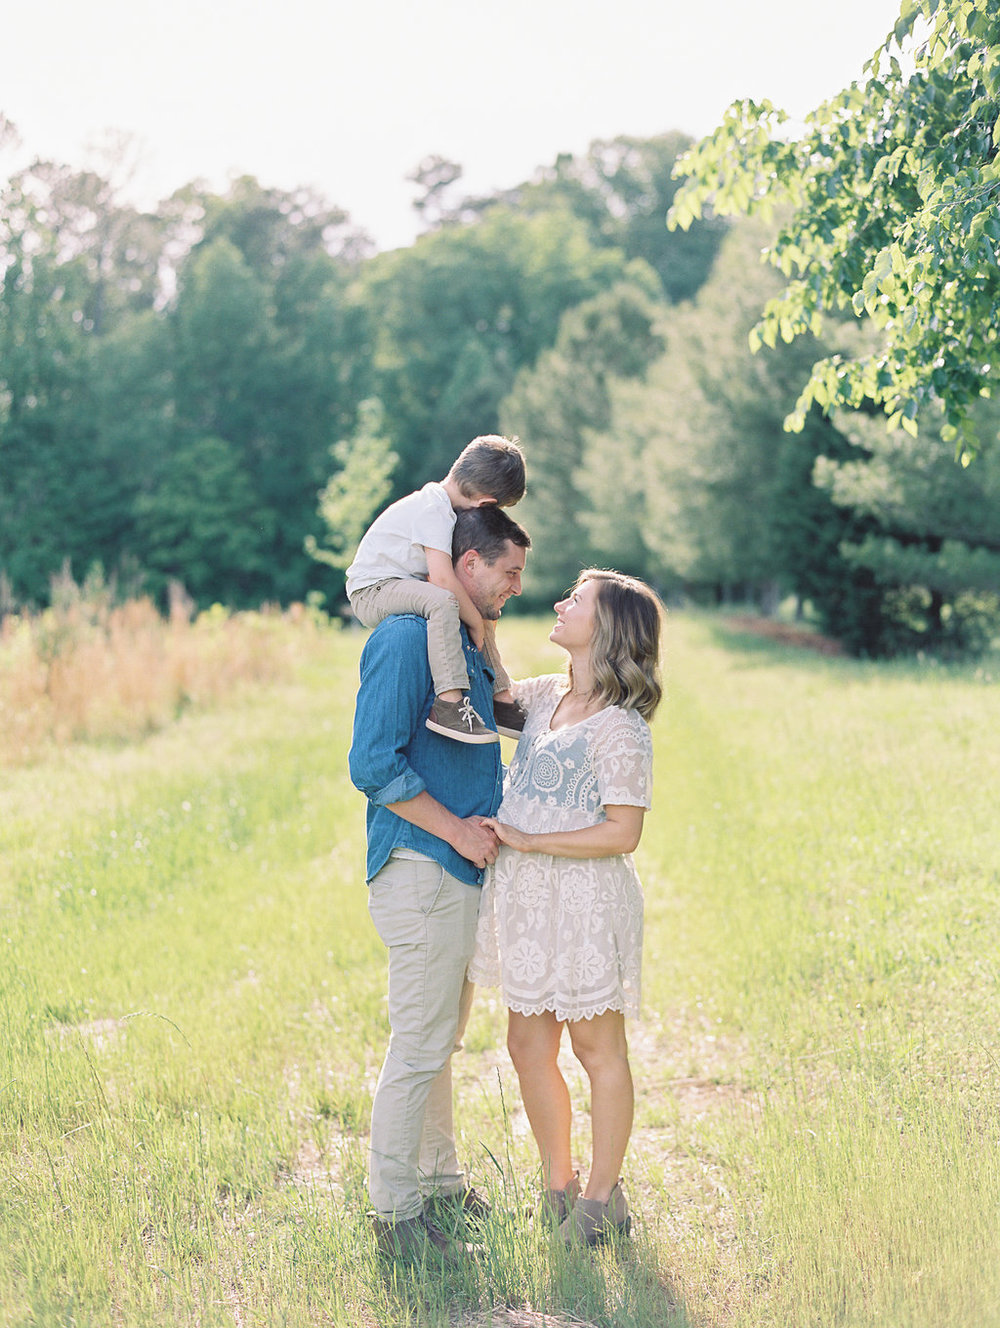 North-Georgia-Family-Session-atlanta-wedding-photographer-hannah-forsberg-5.jpg